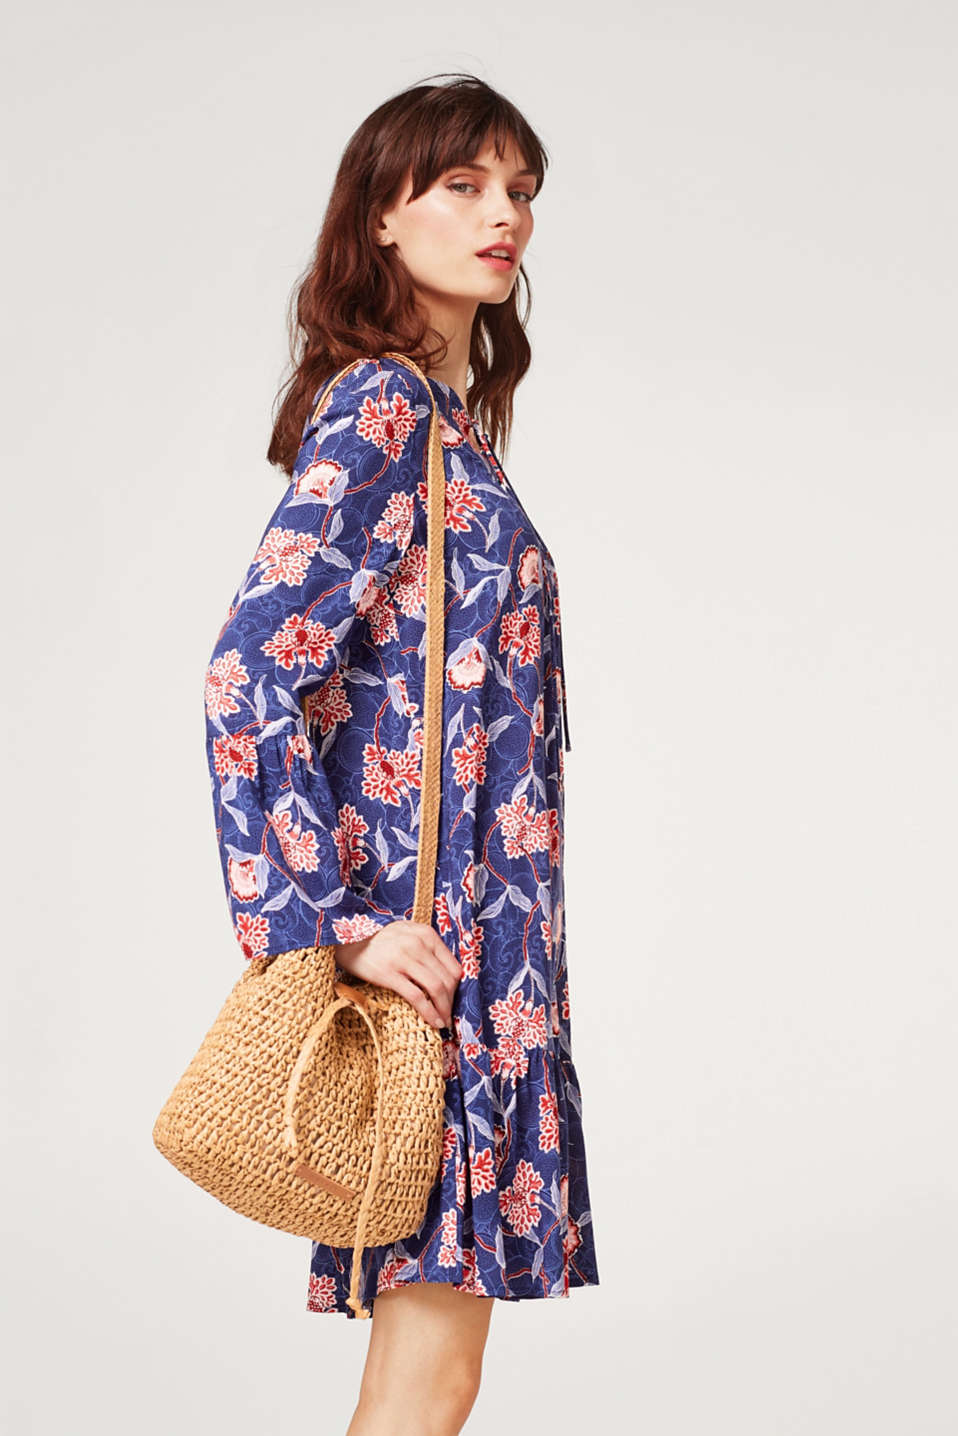 Lightweight printed dress with flounce details